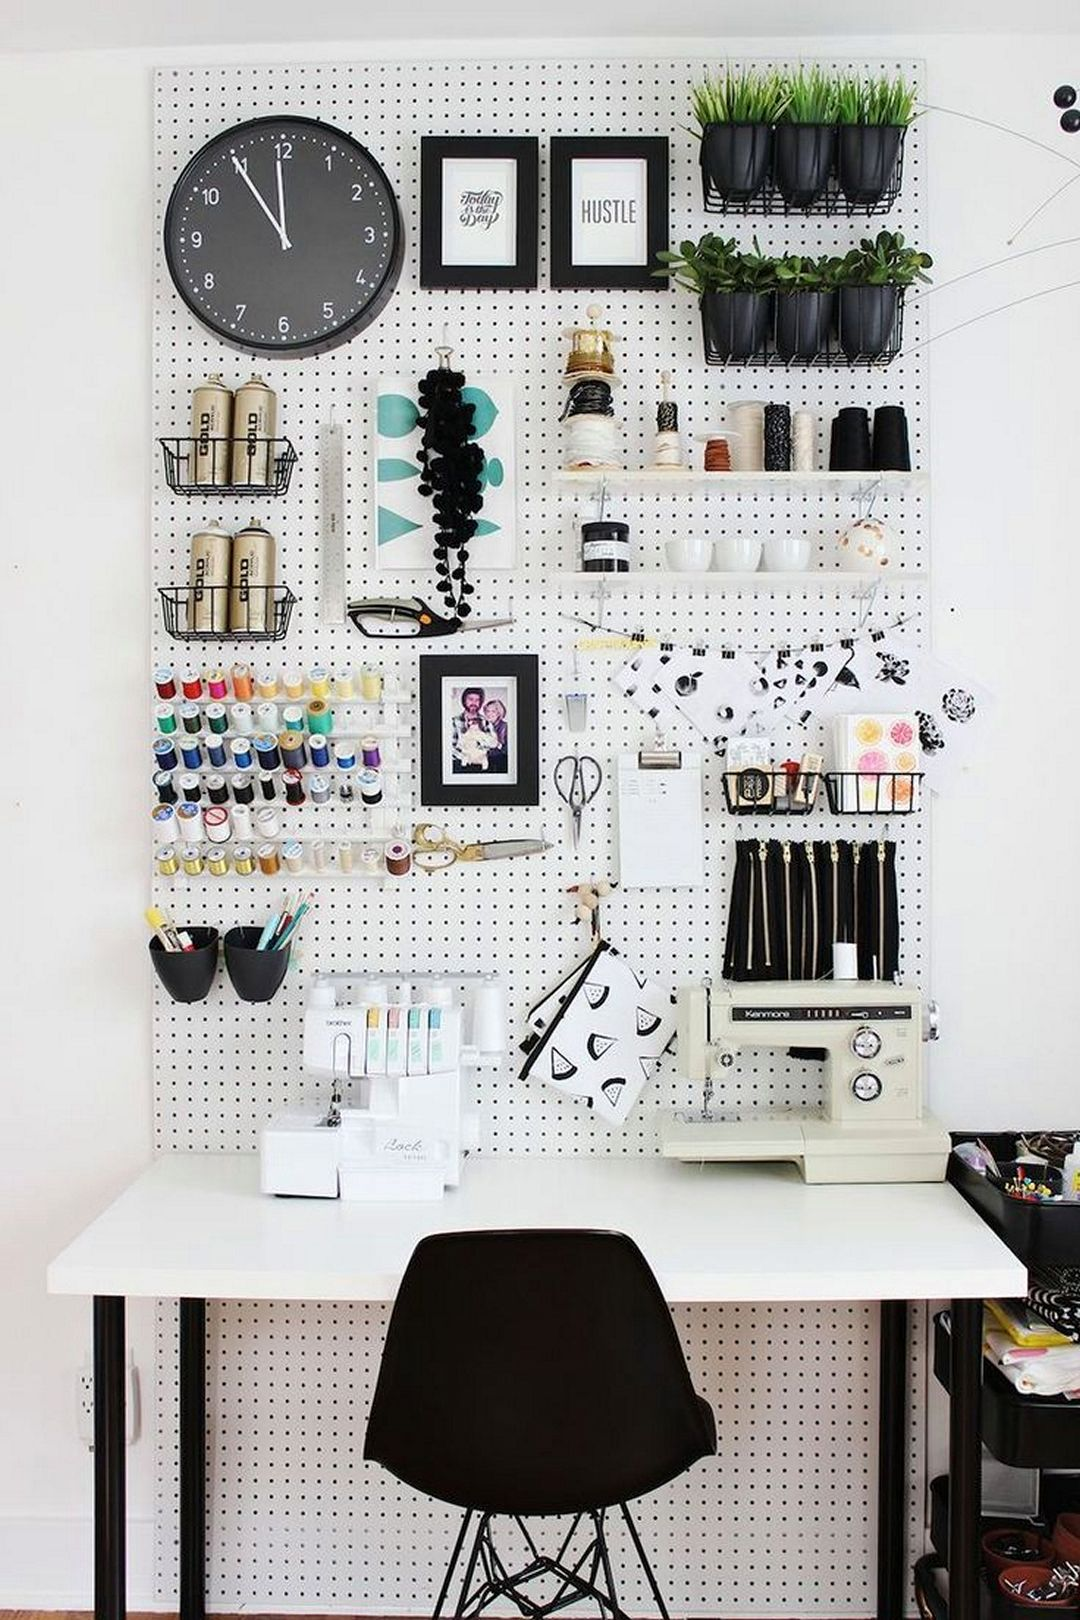 170 Beautiful Home Office Design Ideas   Office designs, Room and ...